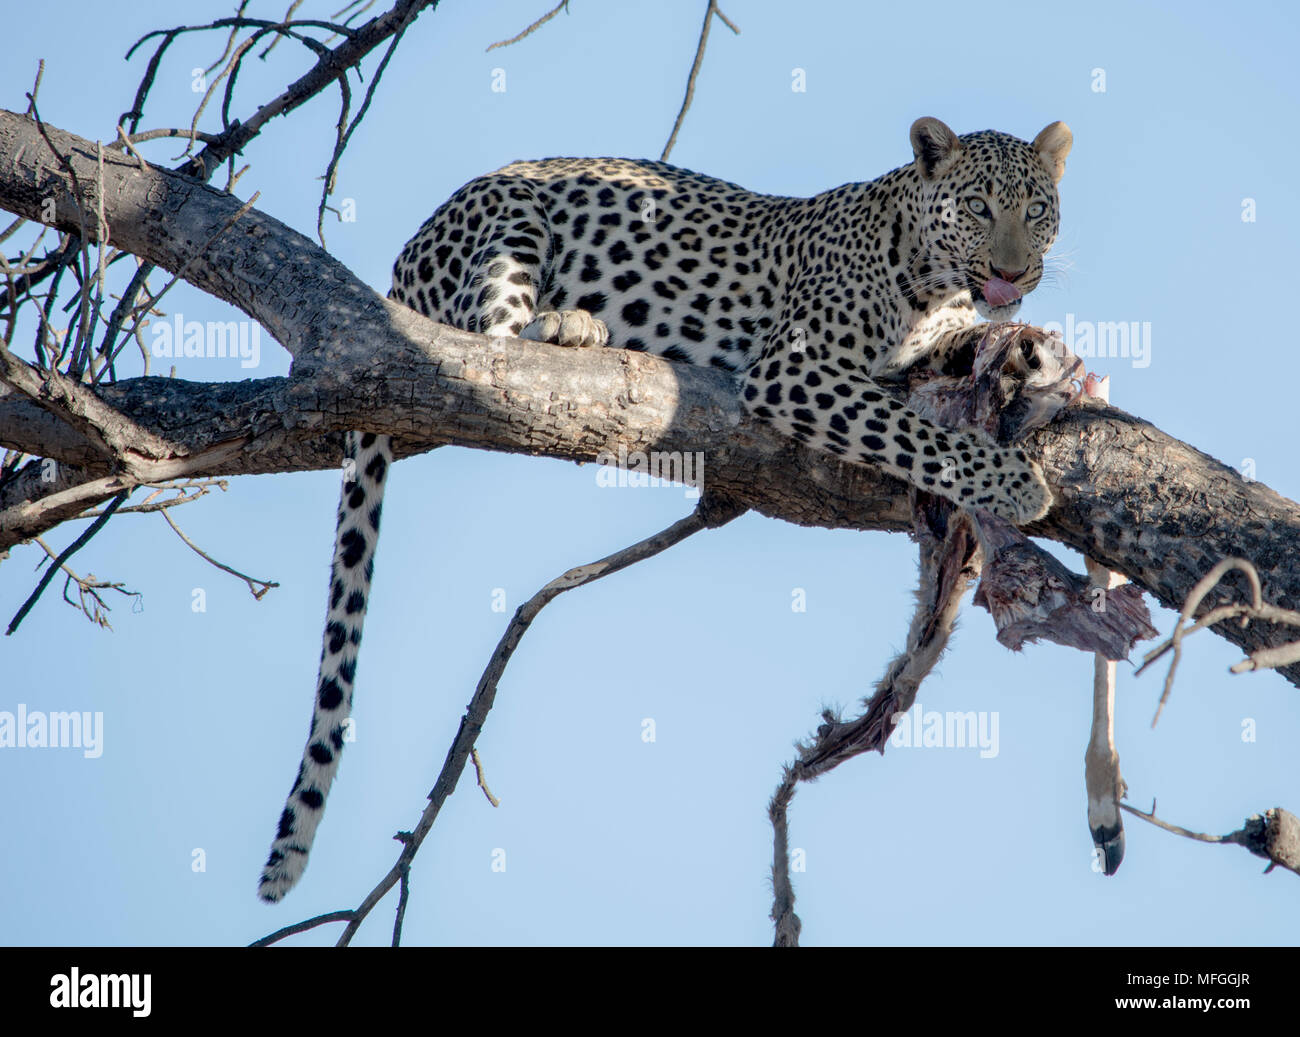 Wild Leopard in tree with kill - Stock Image